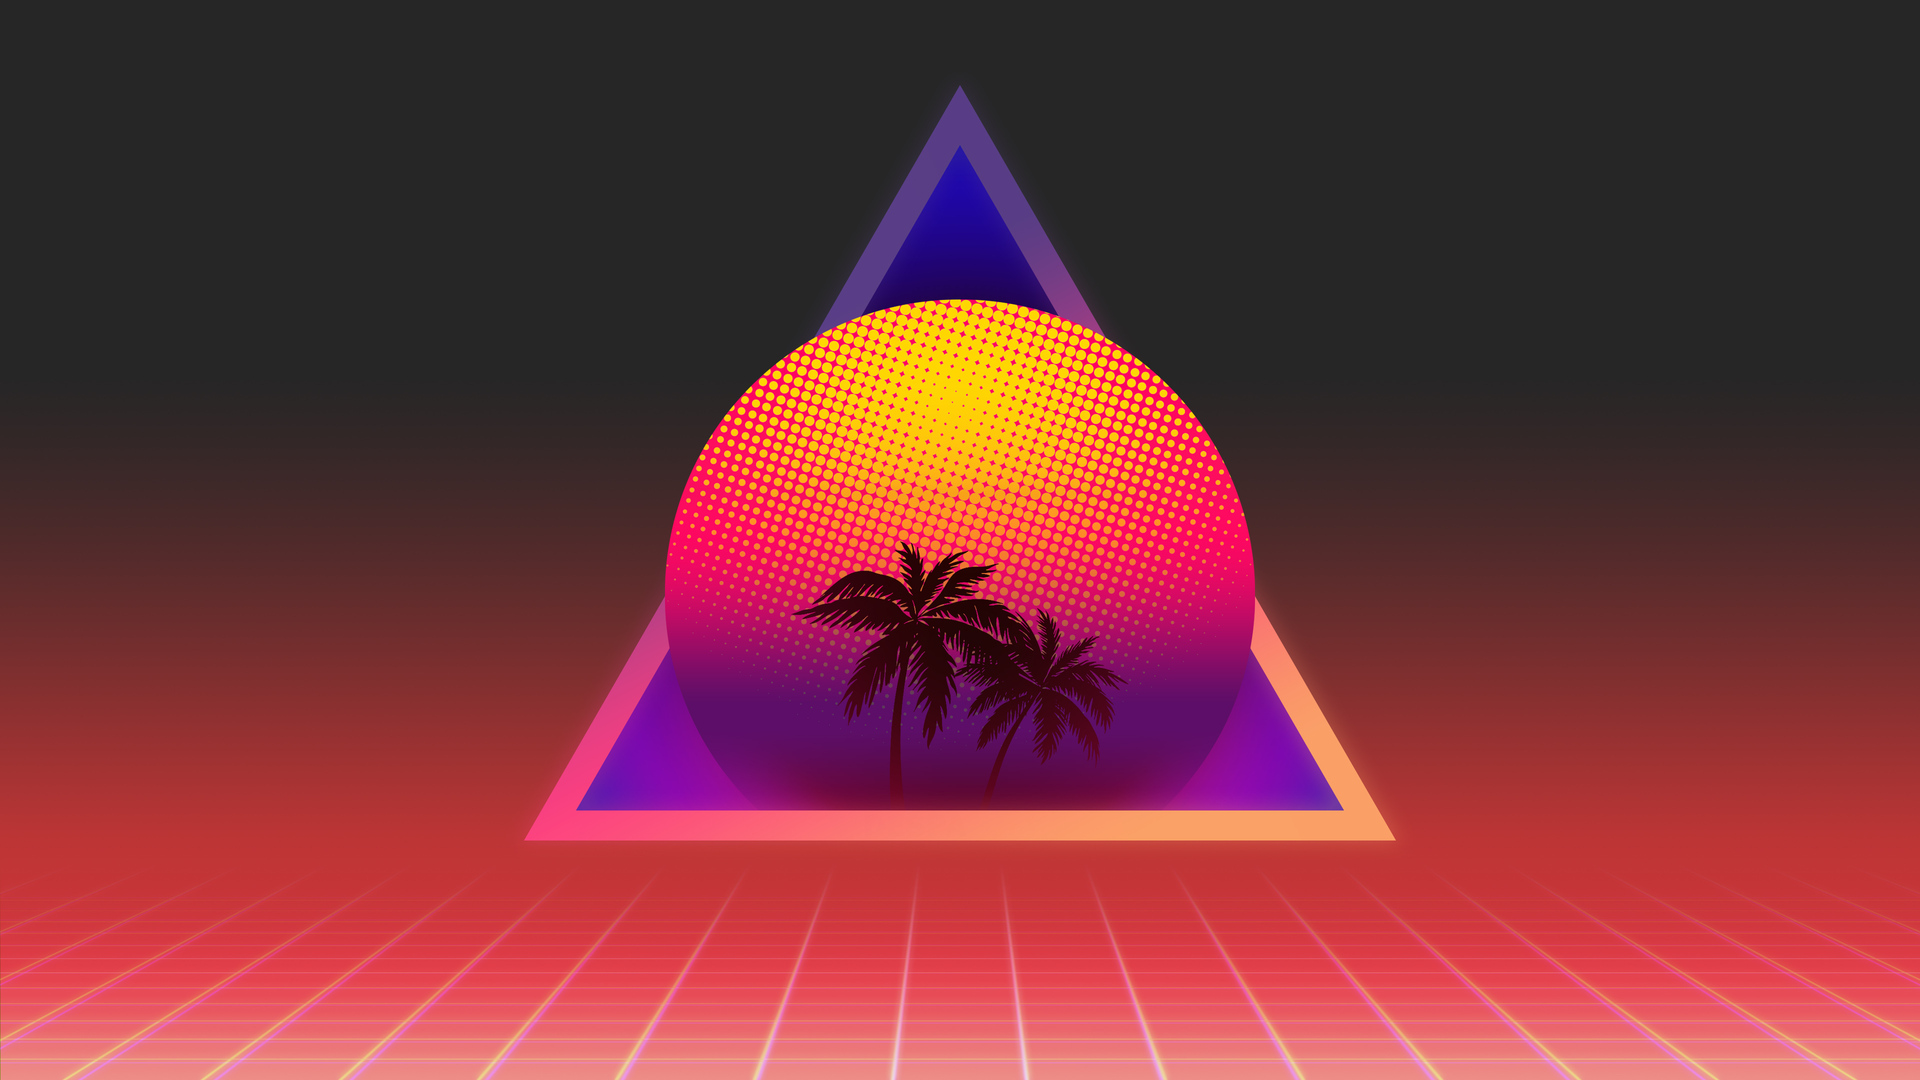 synthwave-outrun-trees-4k-fl.jpg